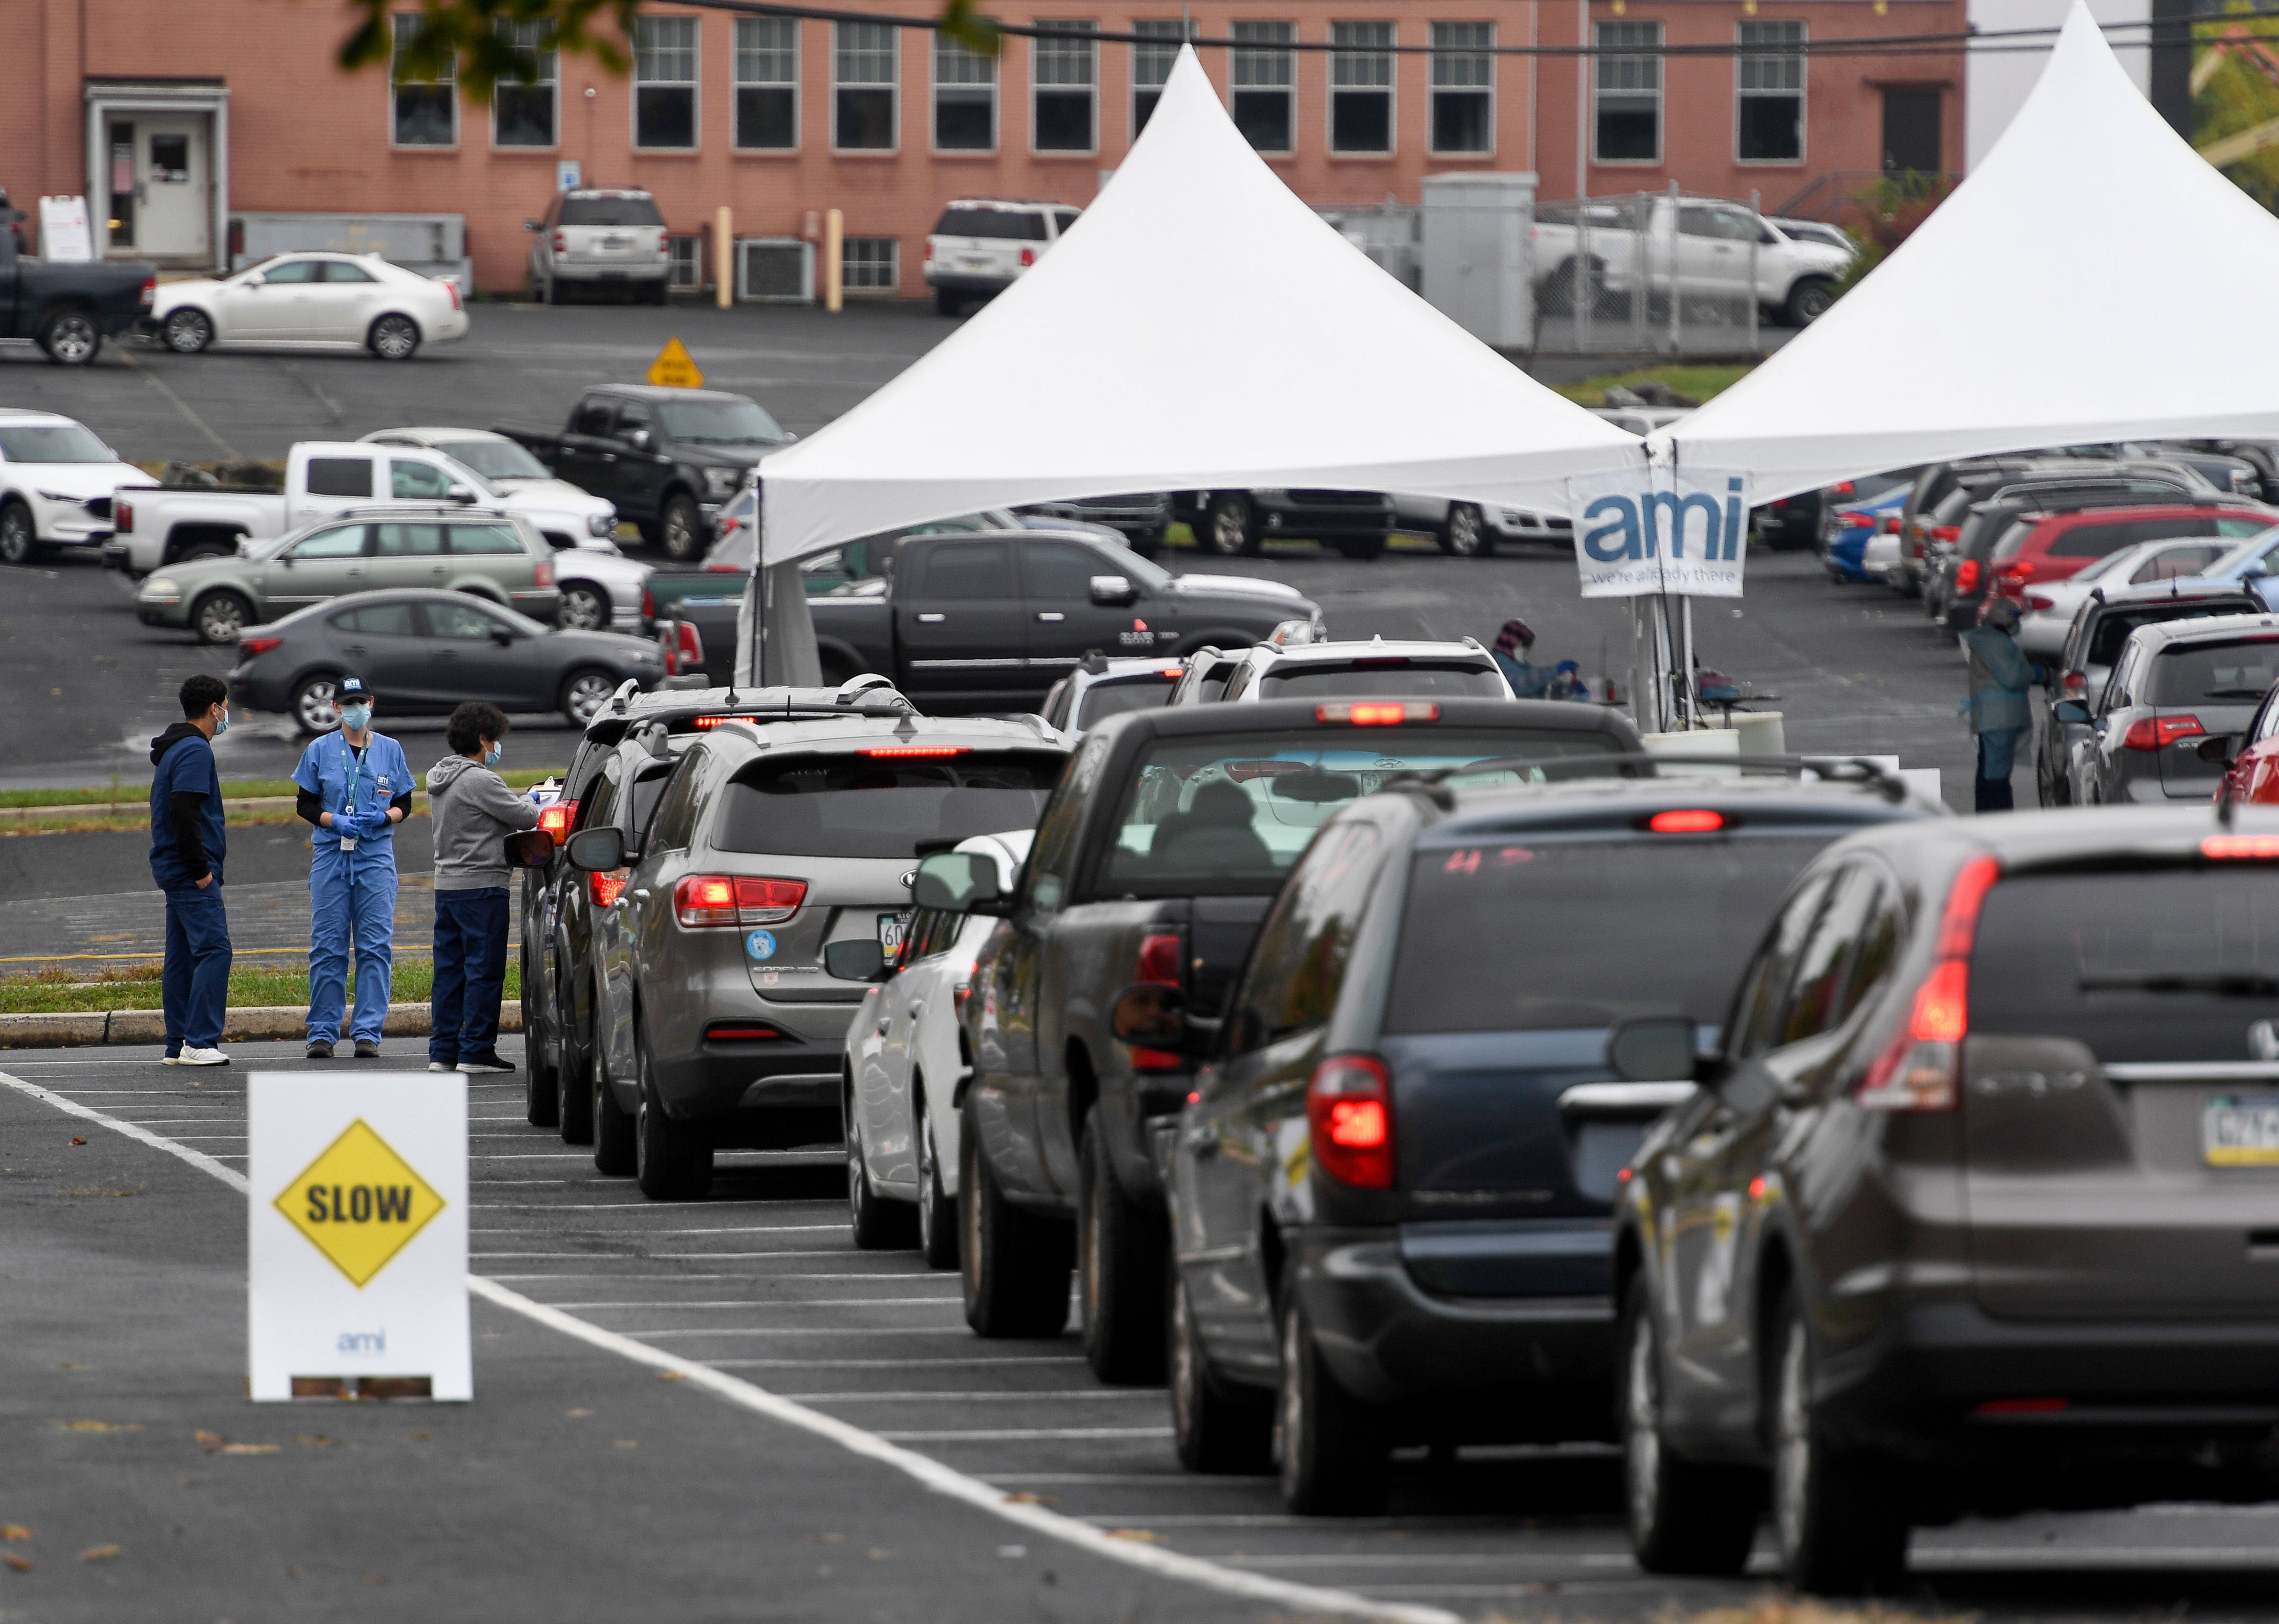 People in cars wait in line for Covid-19 testing on October 13 in Reading, Pennsylvania.